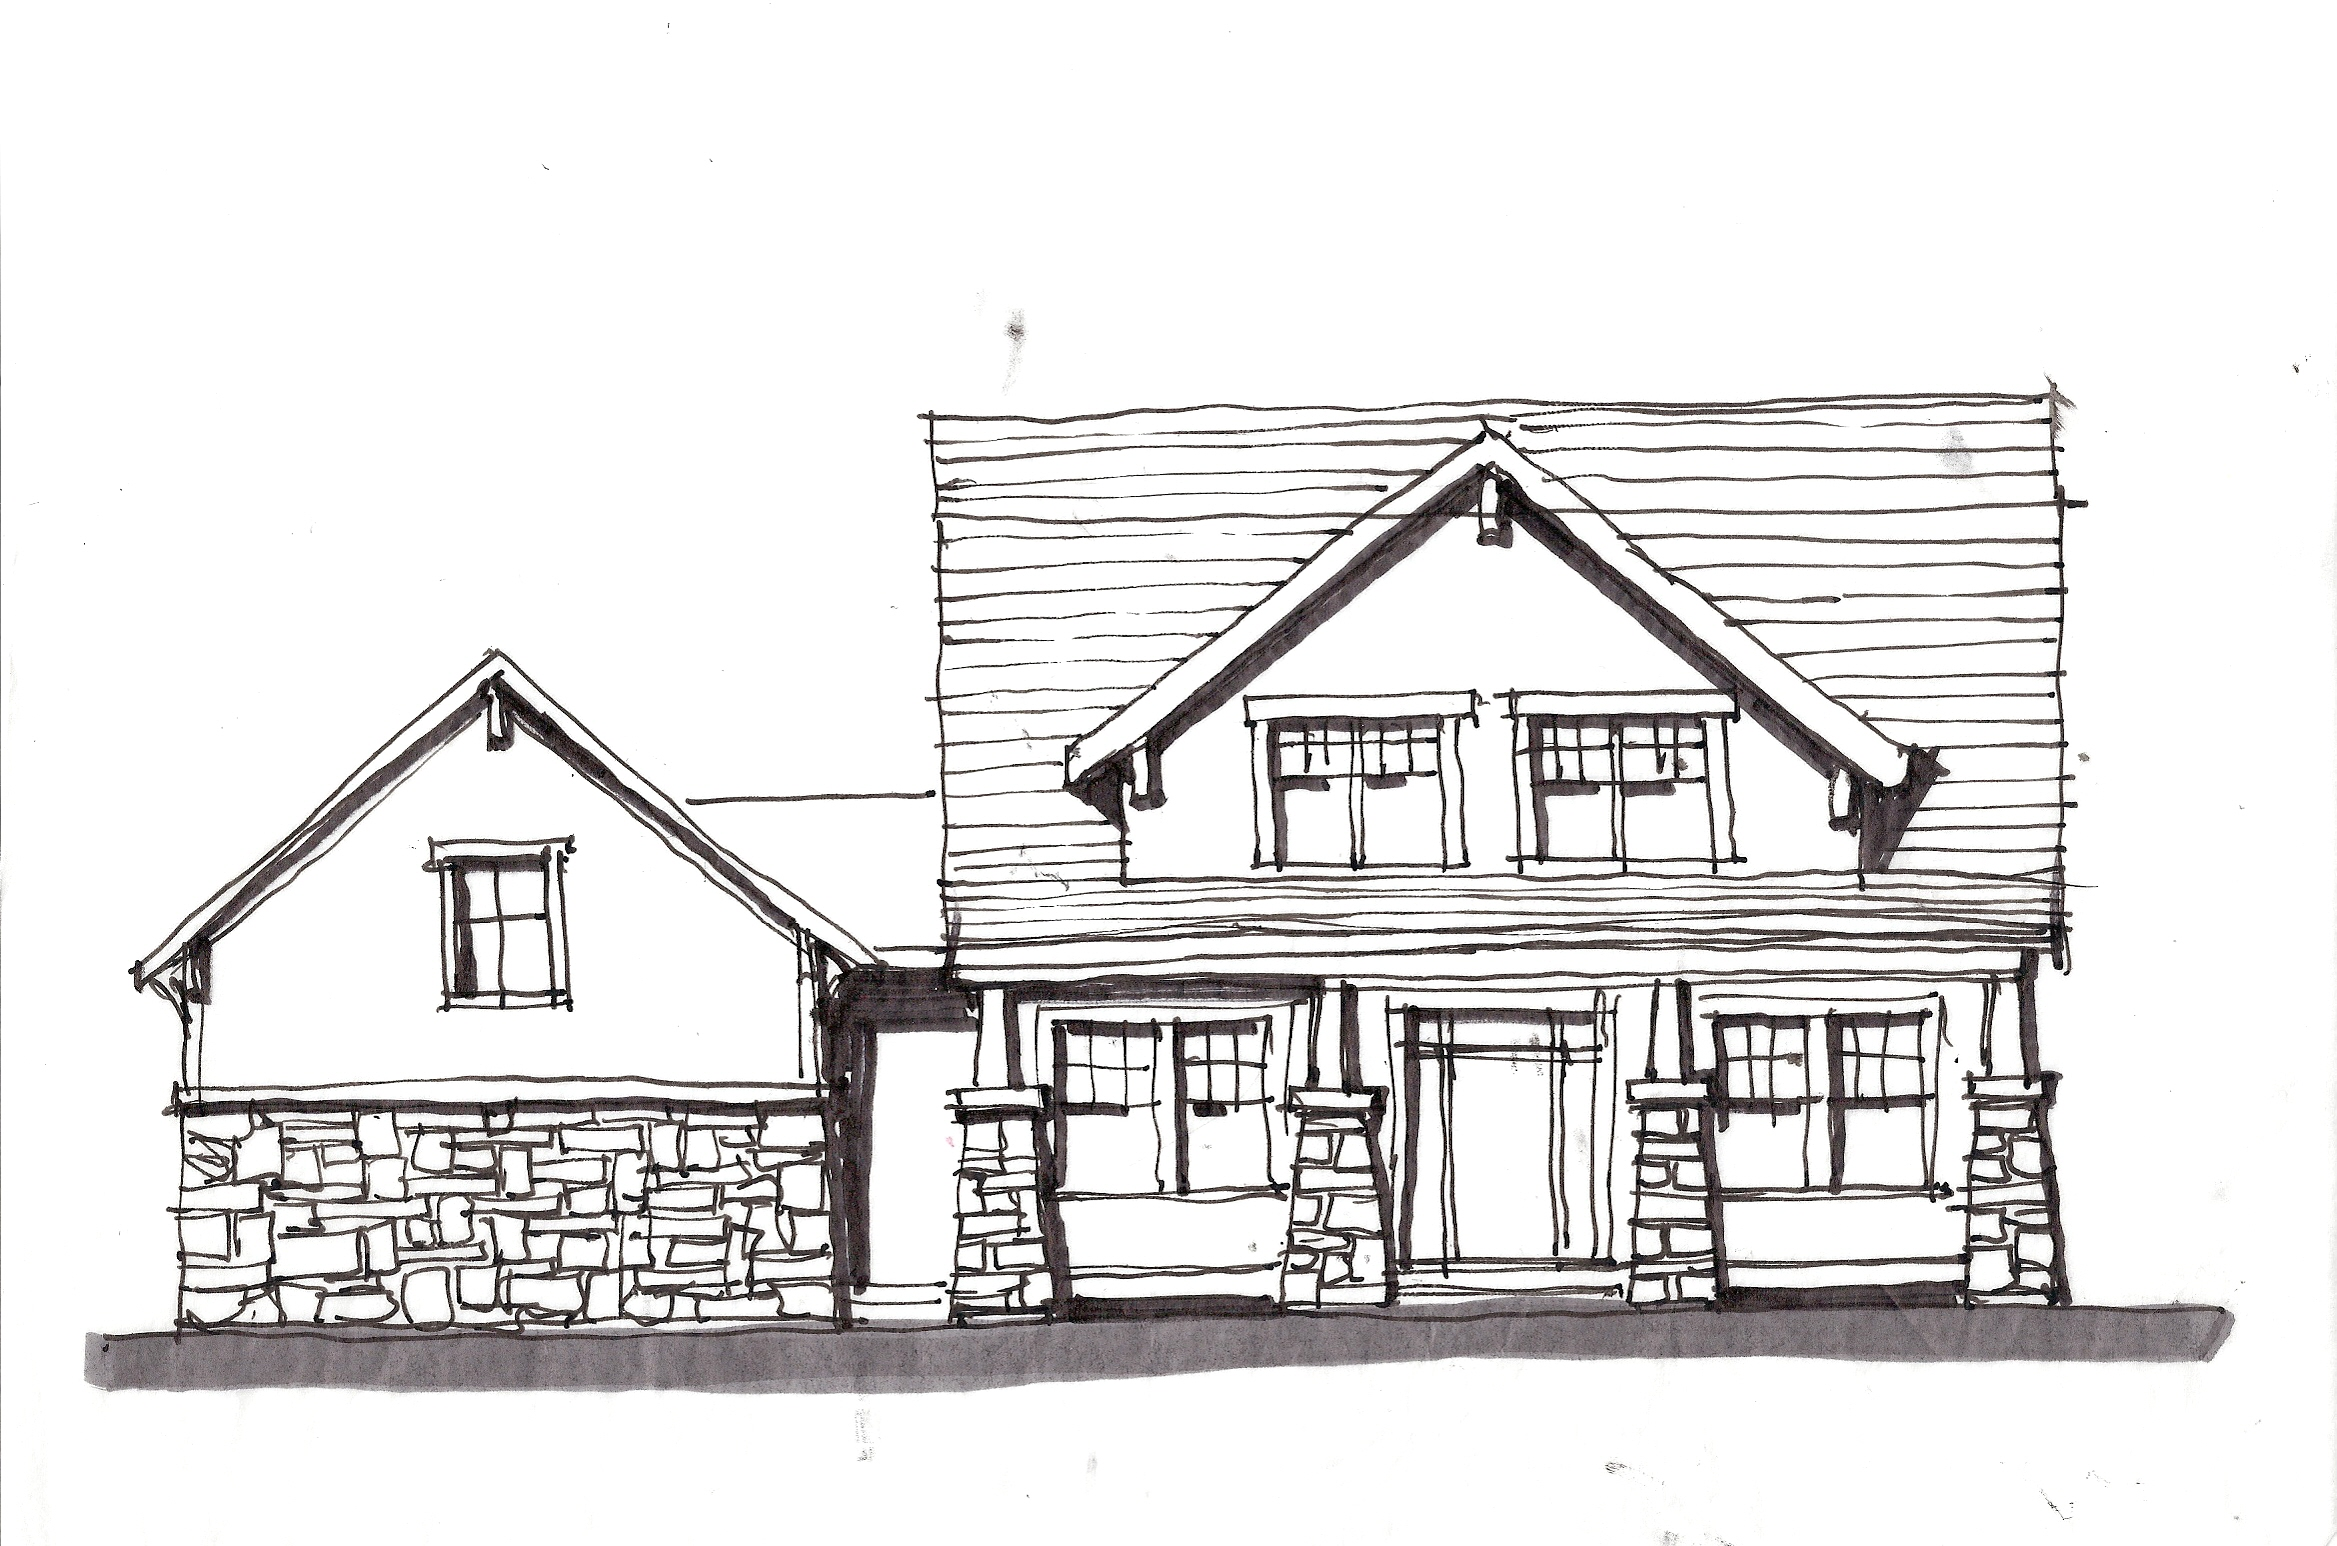 Design sketches House plan sketch design